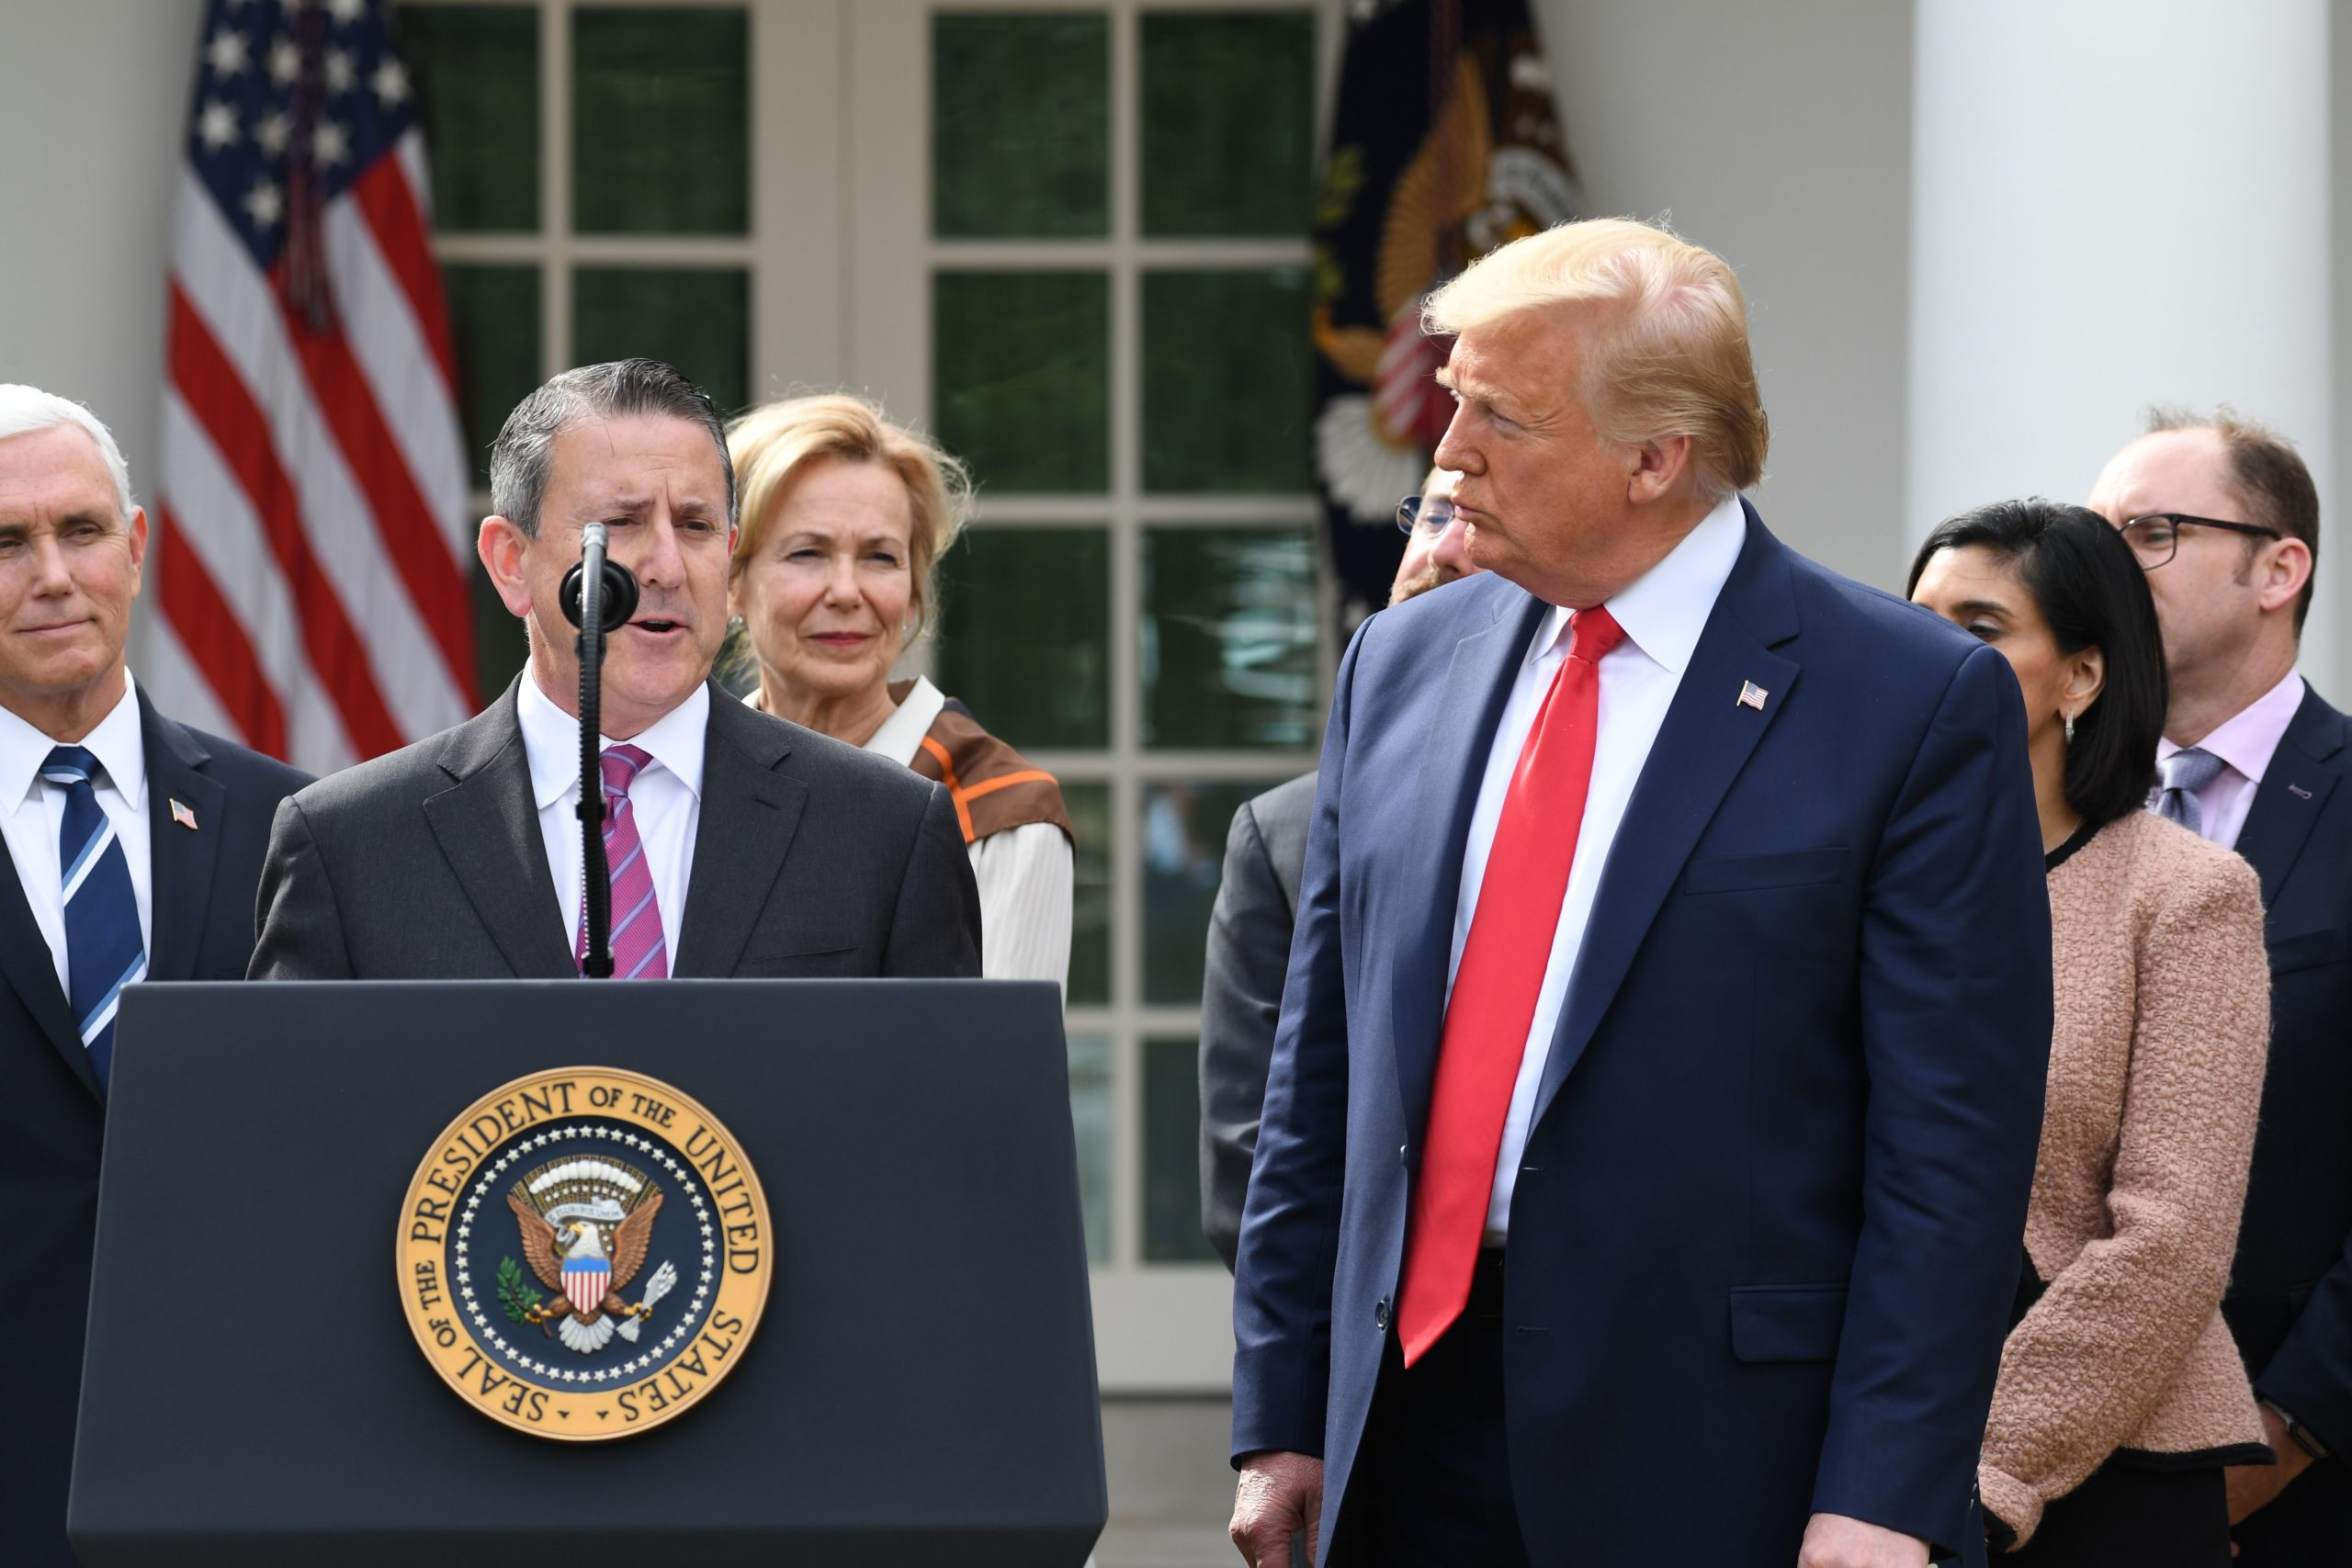 Brian Cornell, Chairman and CEO of Target, speaks as former President Donald Trump listens on March 13, 2020. (Saul Loeb/AFP via Getty Images)